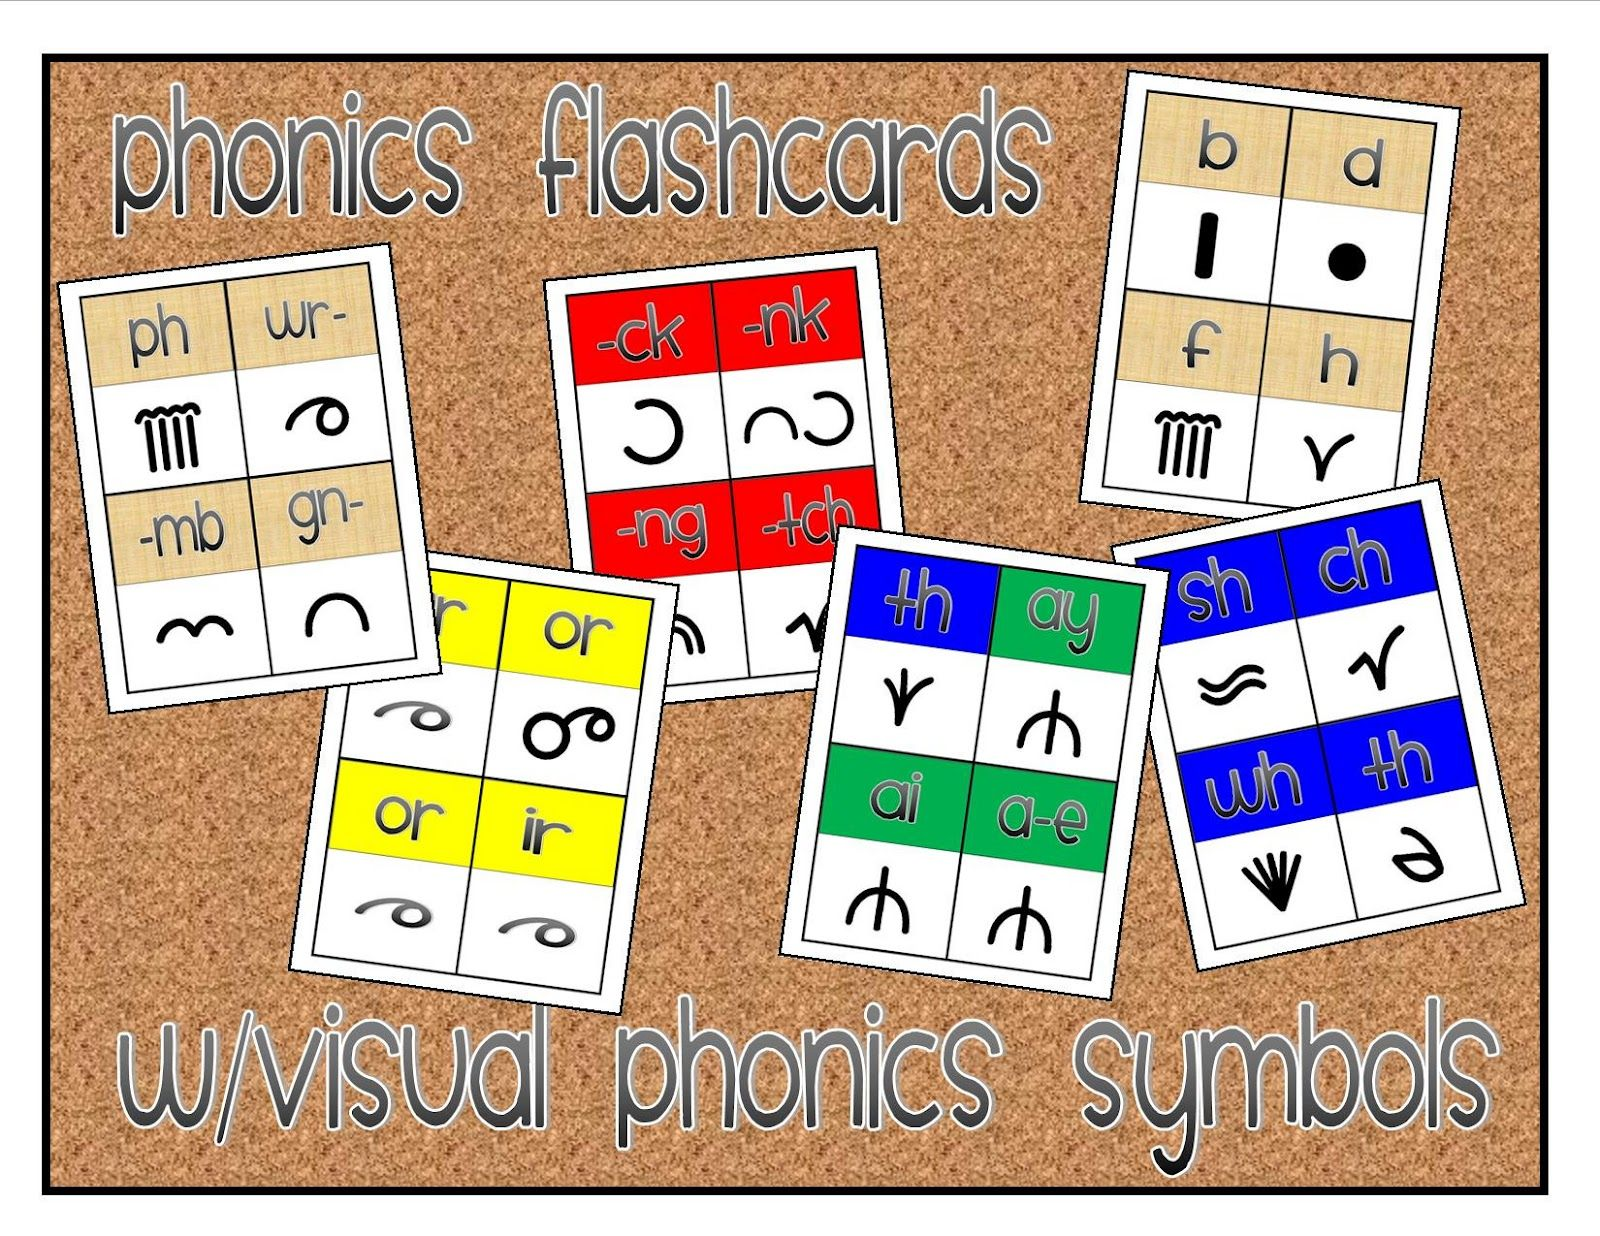 Flashcards That Include Spelling Pattern And Visual Phonics Symbol